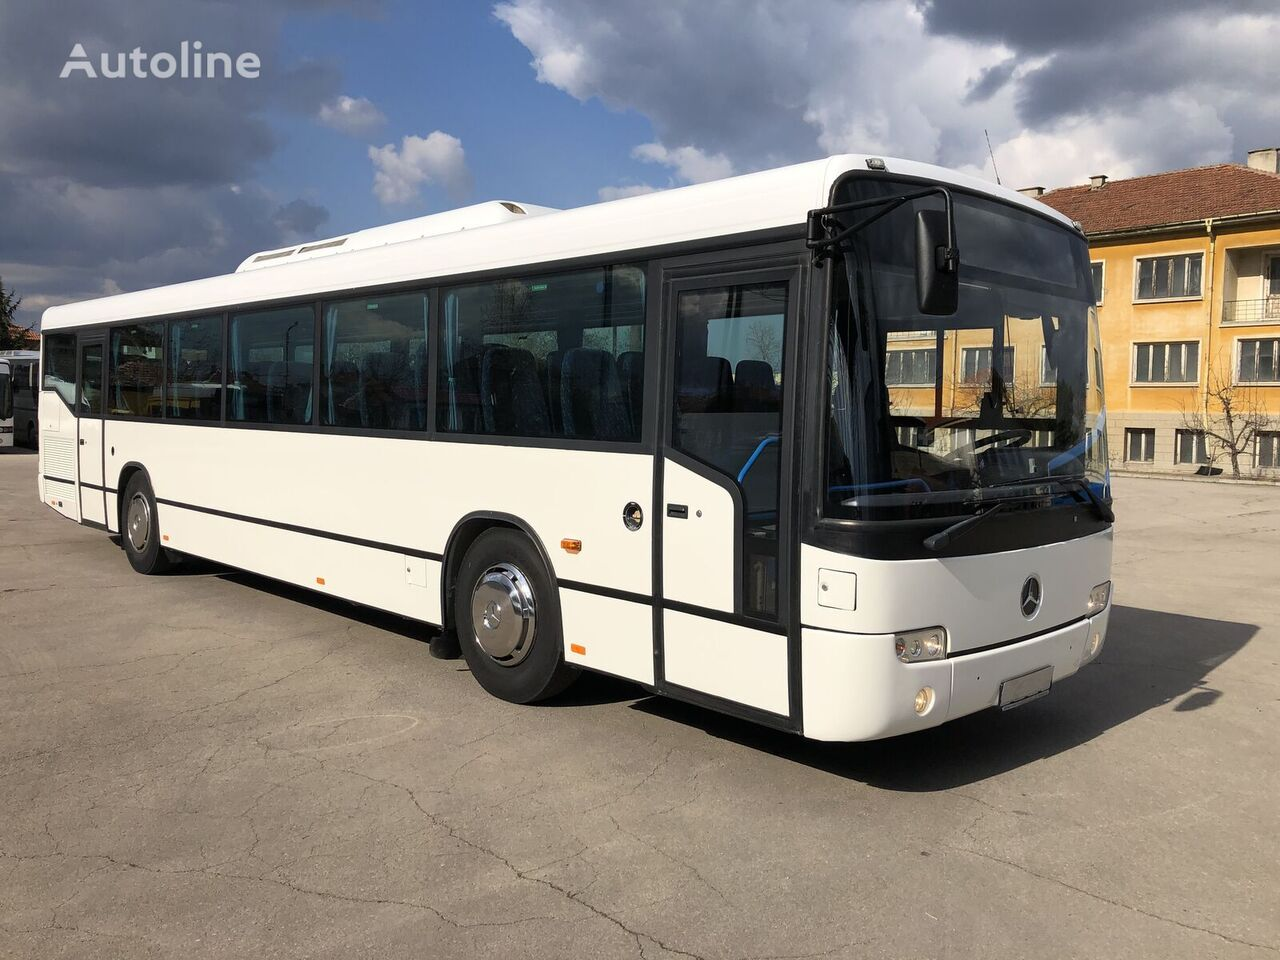 MERCEDES-BENZ O 345 conecto interurban bus